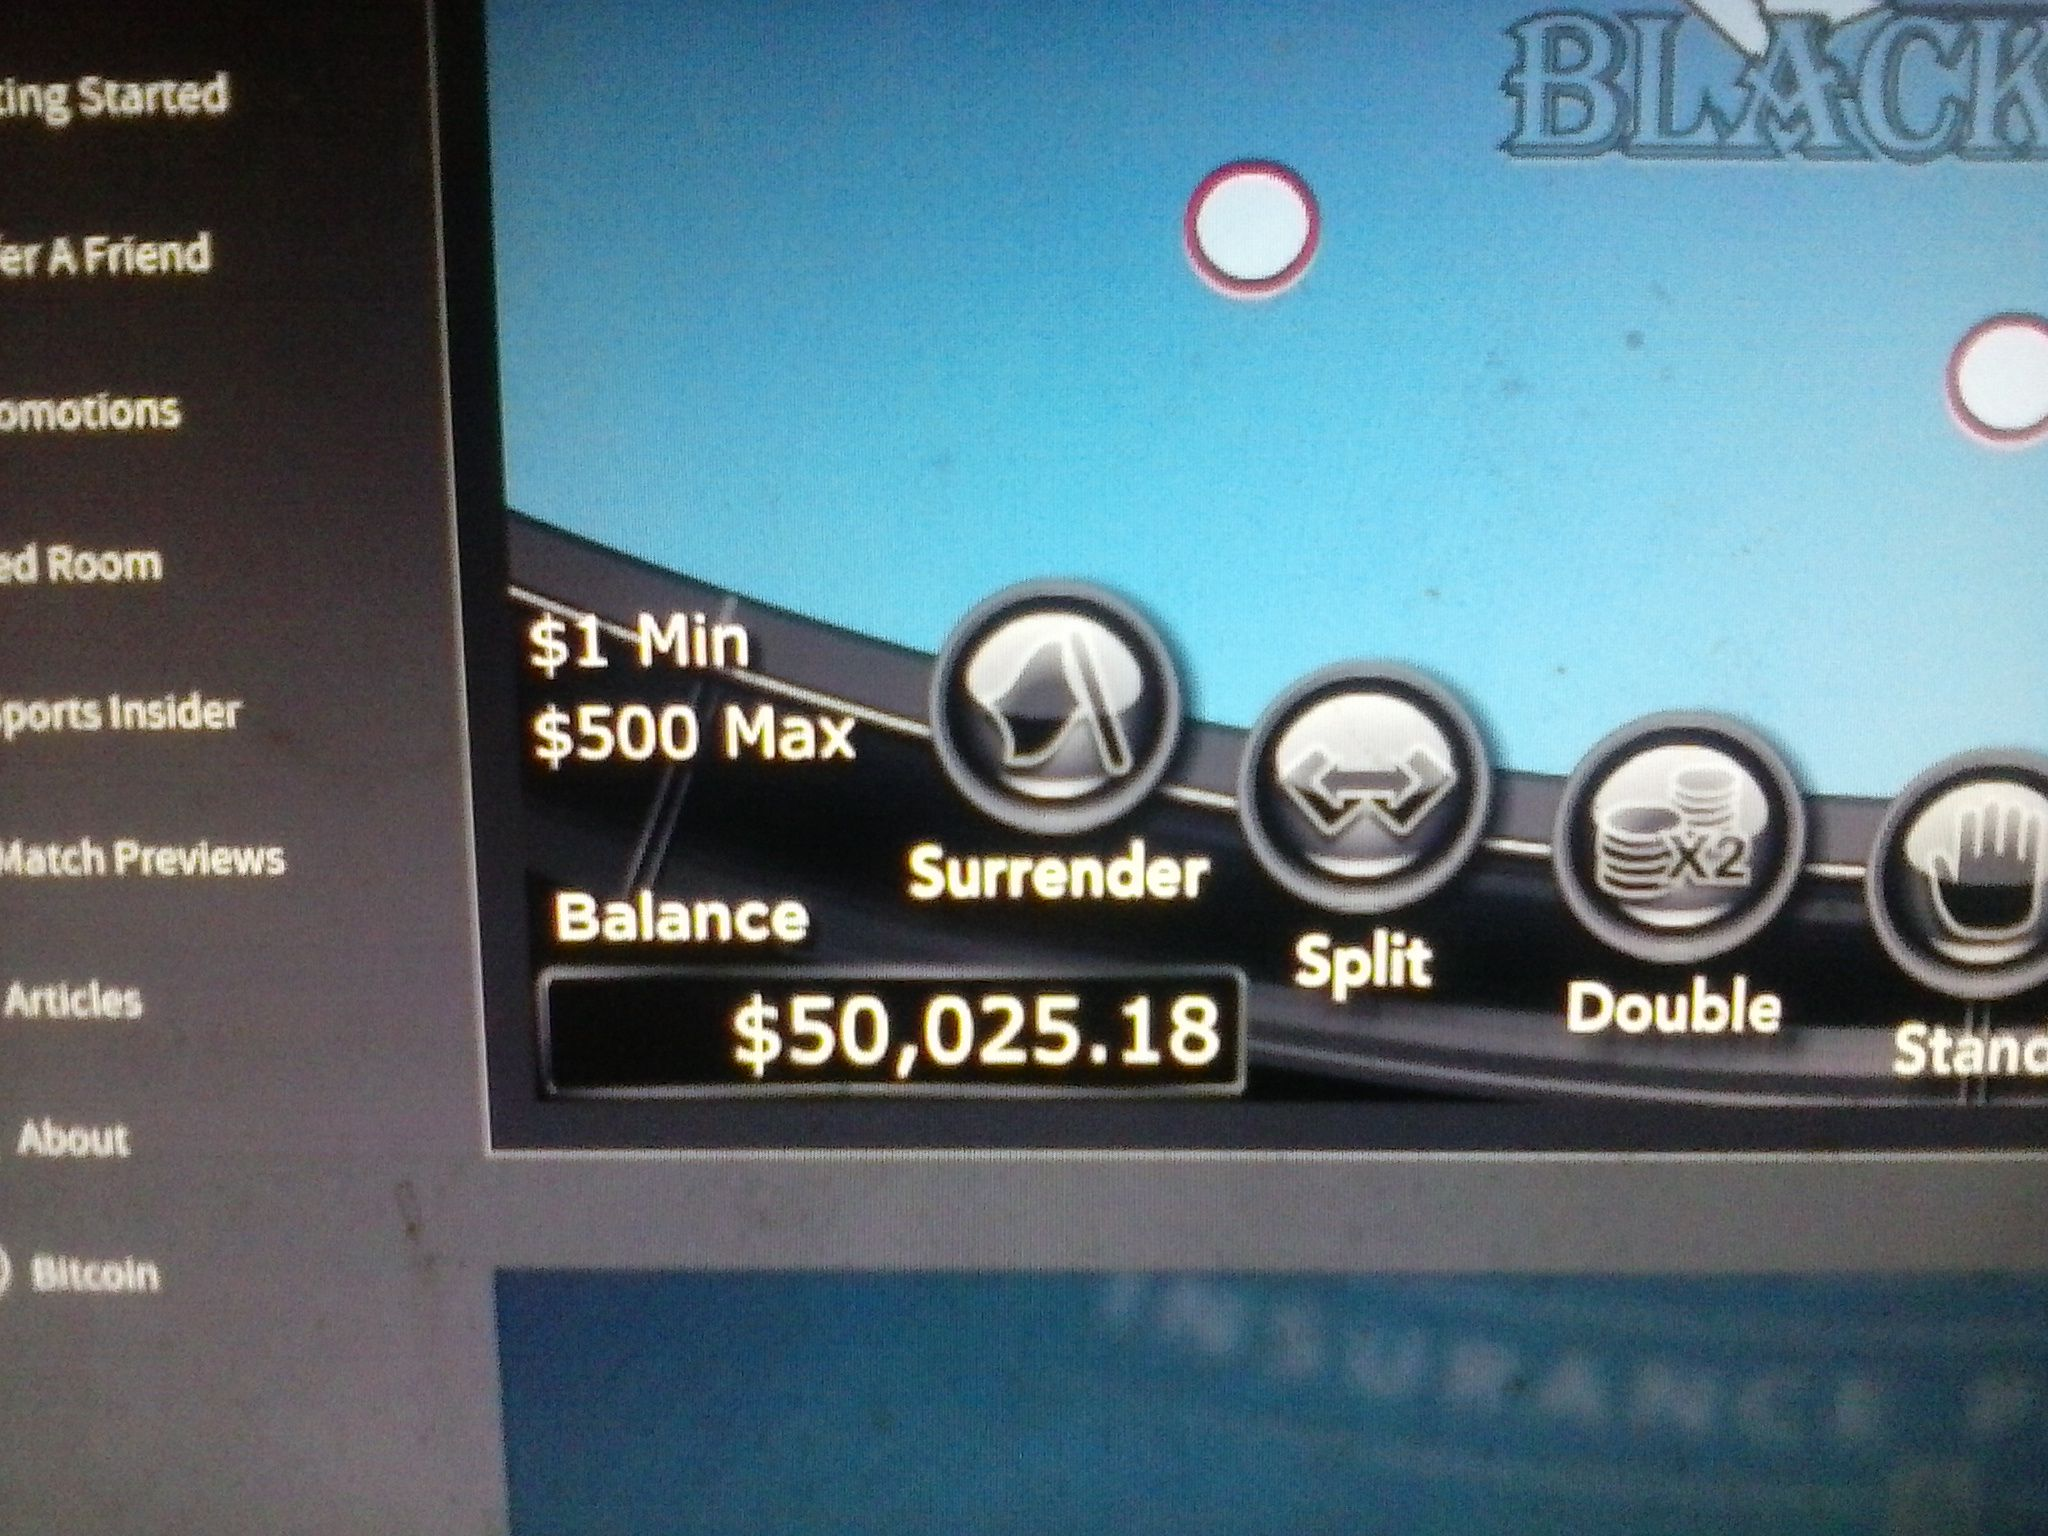 Does lock poker payout us players